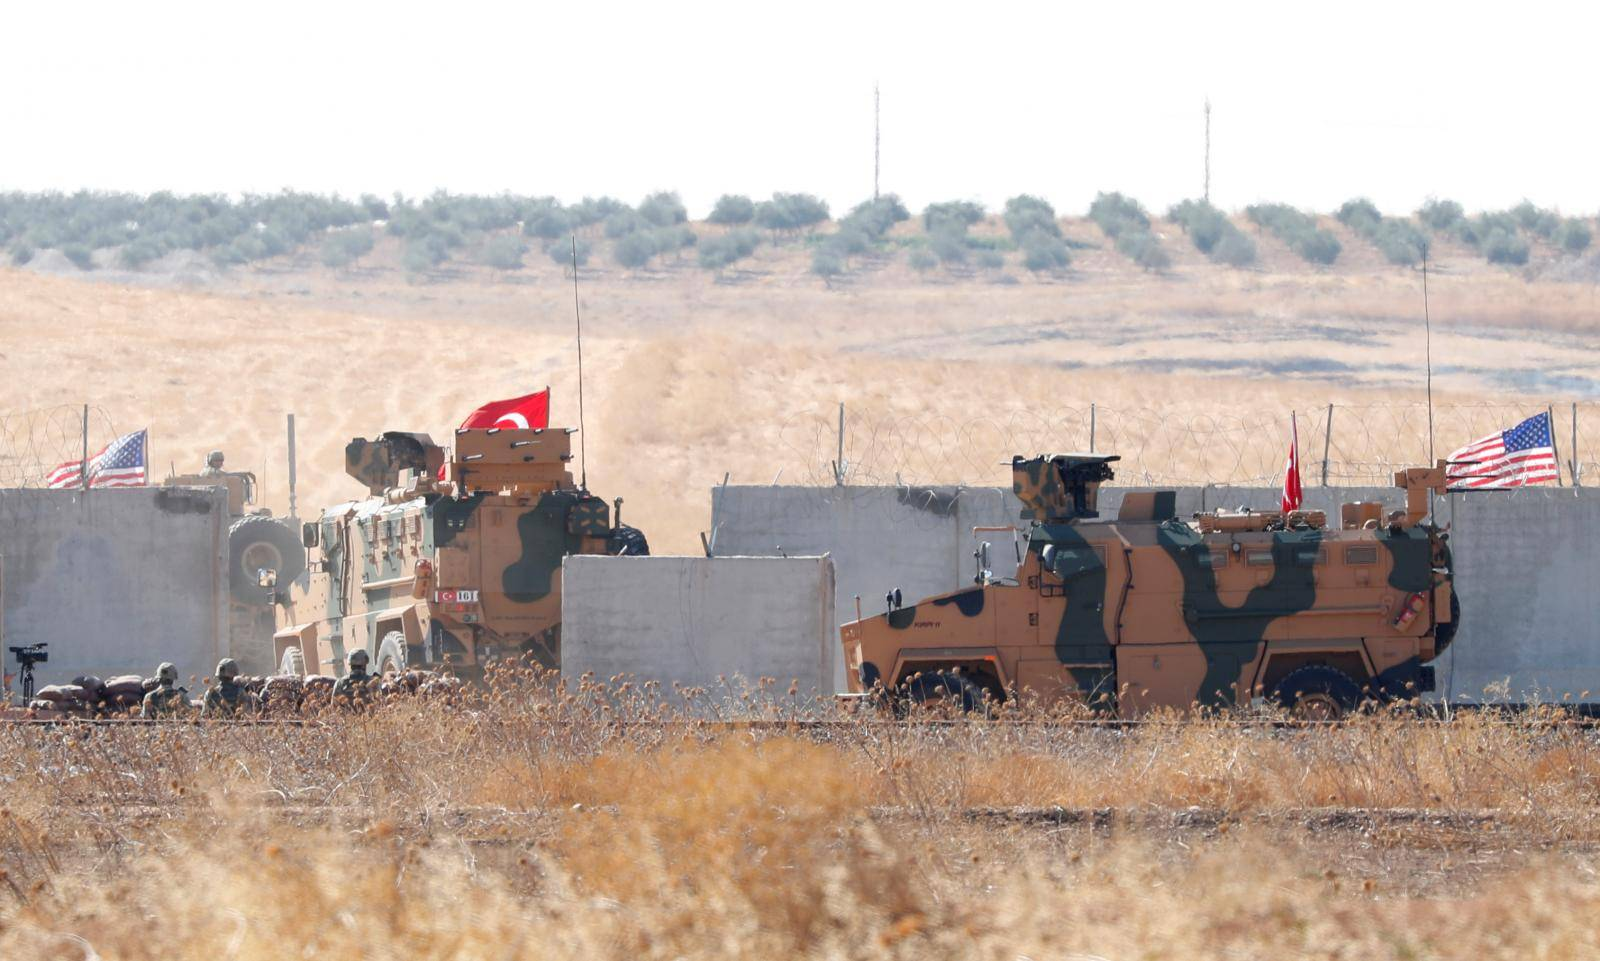 Turkish army vehicles cross into Syria for a joint U.S.-Turkey patrol, near the Turkish town of Akcakale